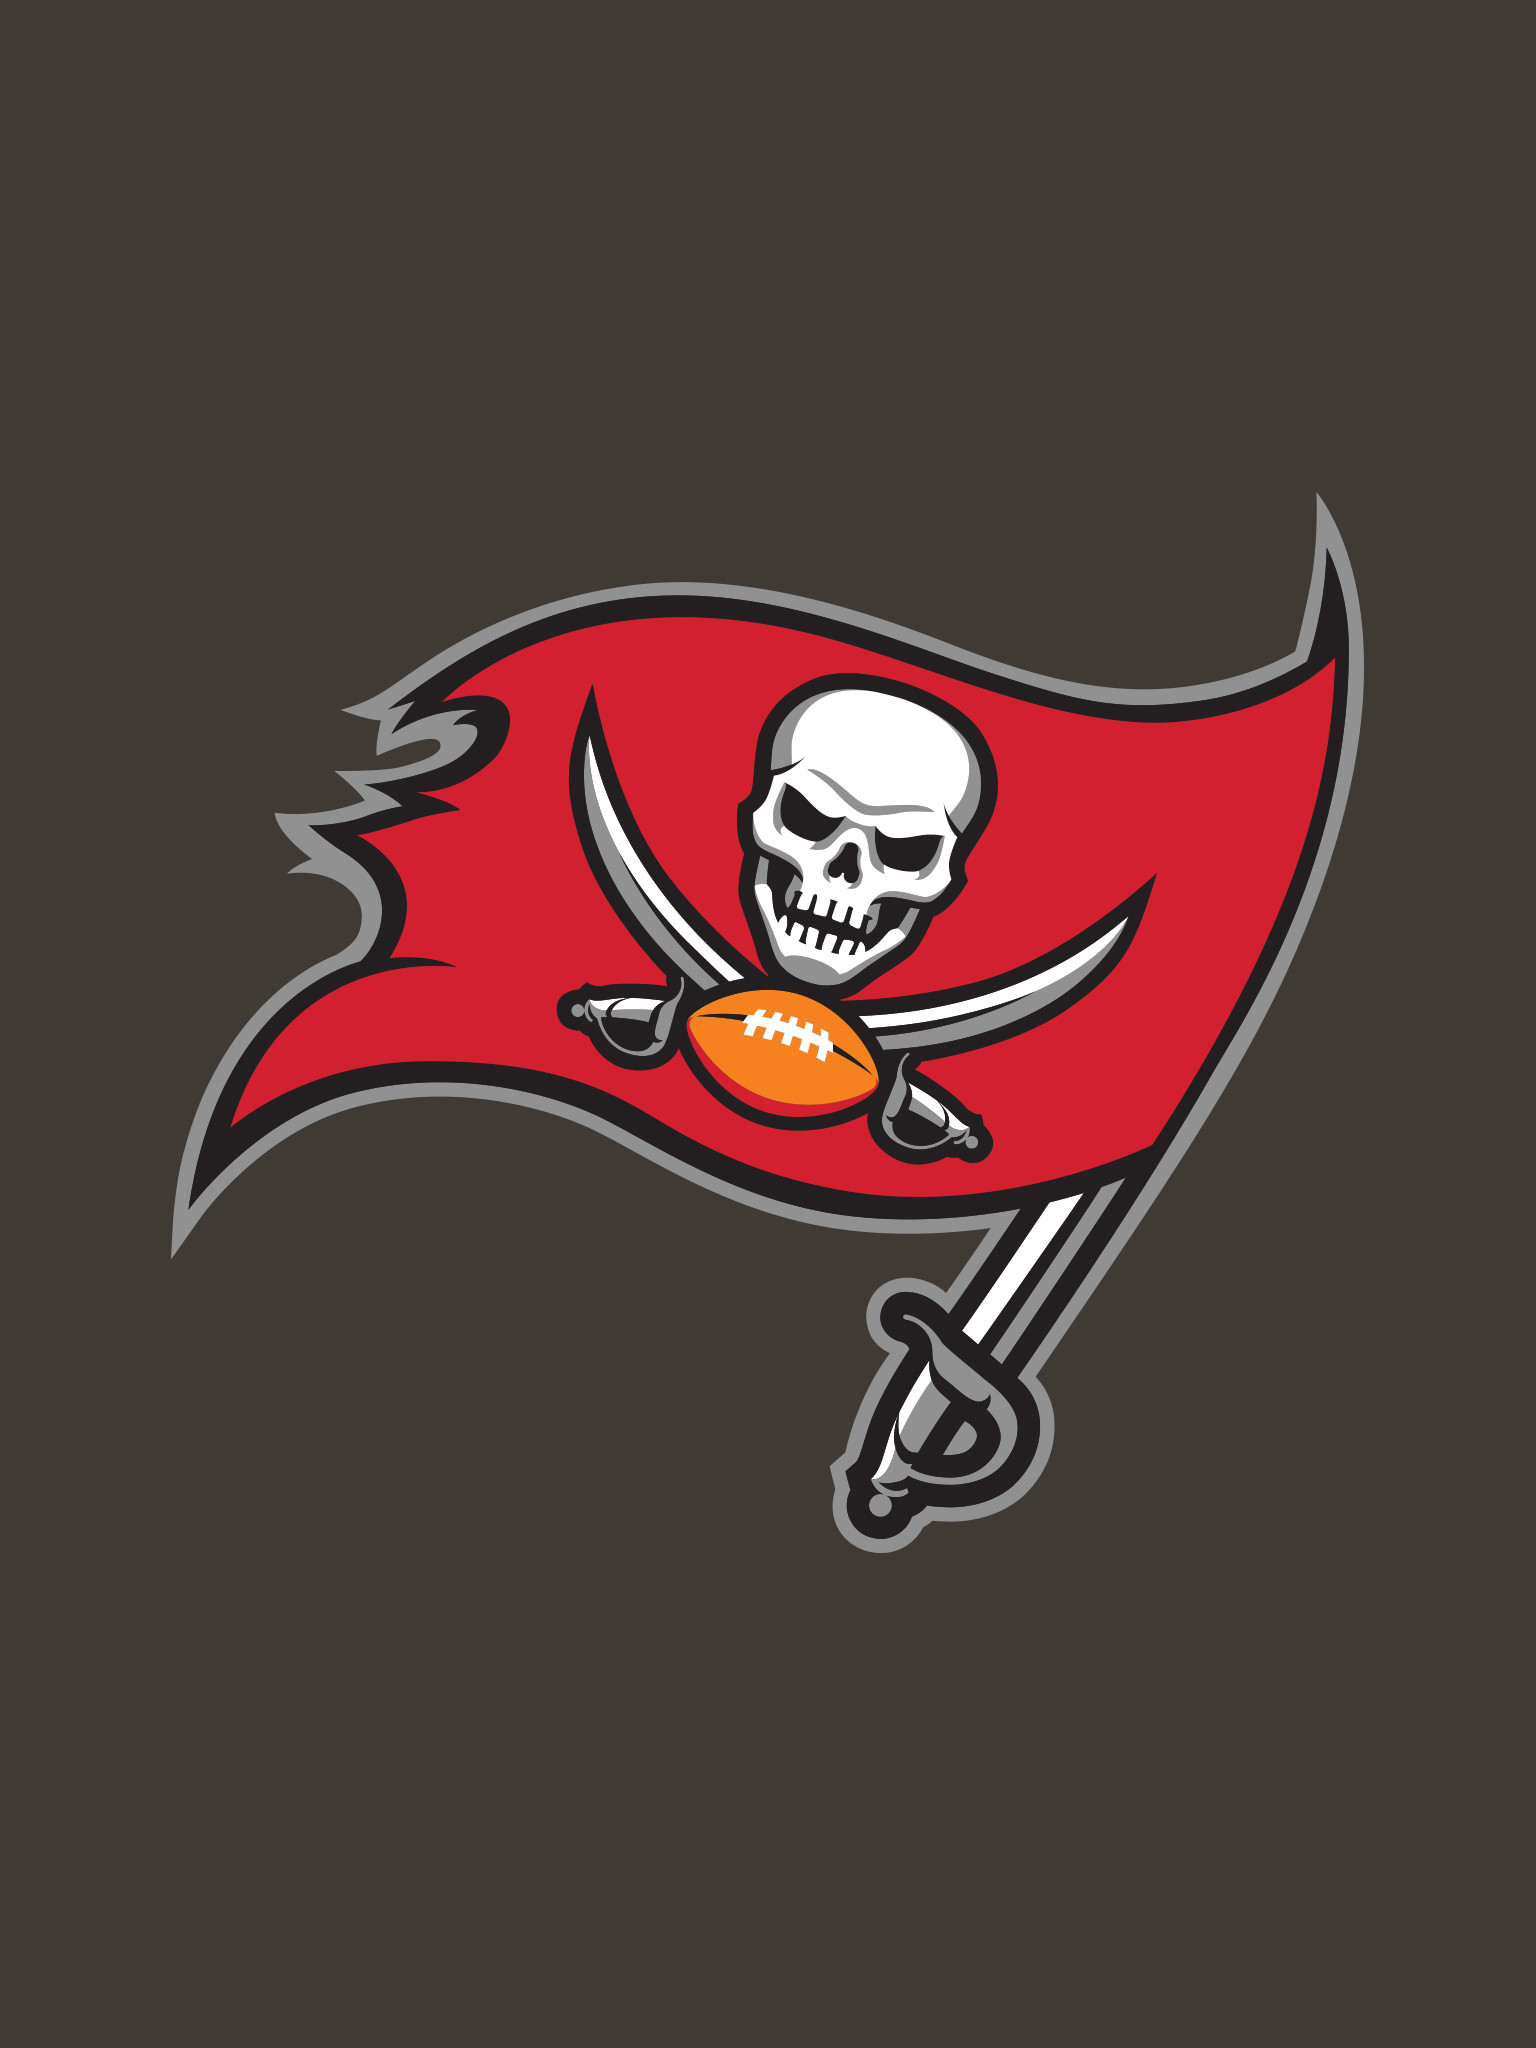 tampa bay buccaneers wallpapers 52 pictures tampa bay buccaneers wallpapers 52